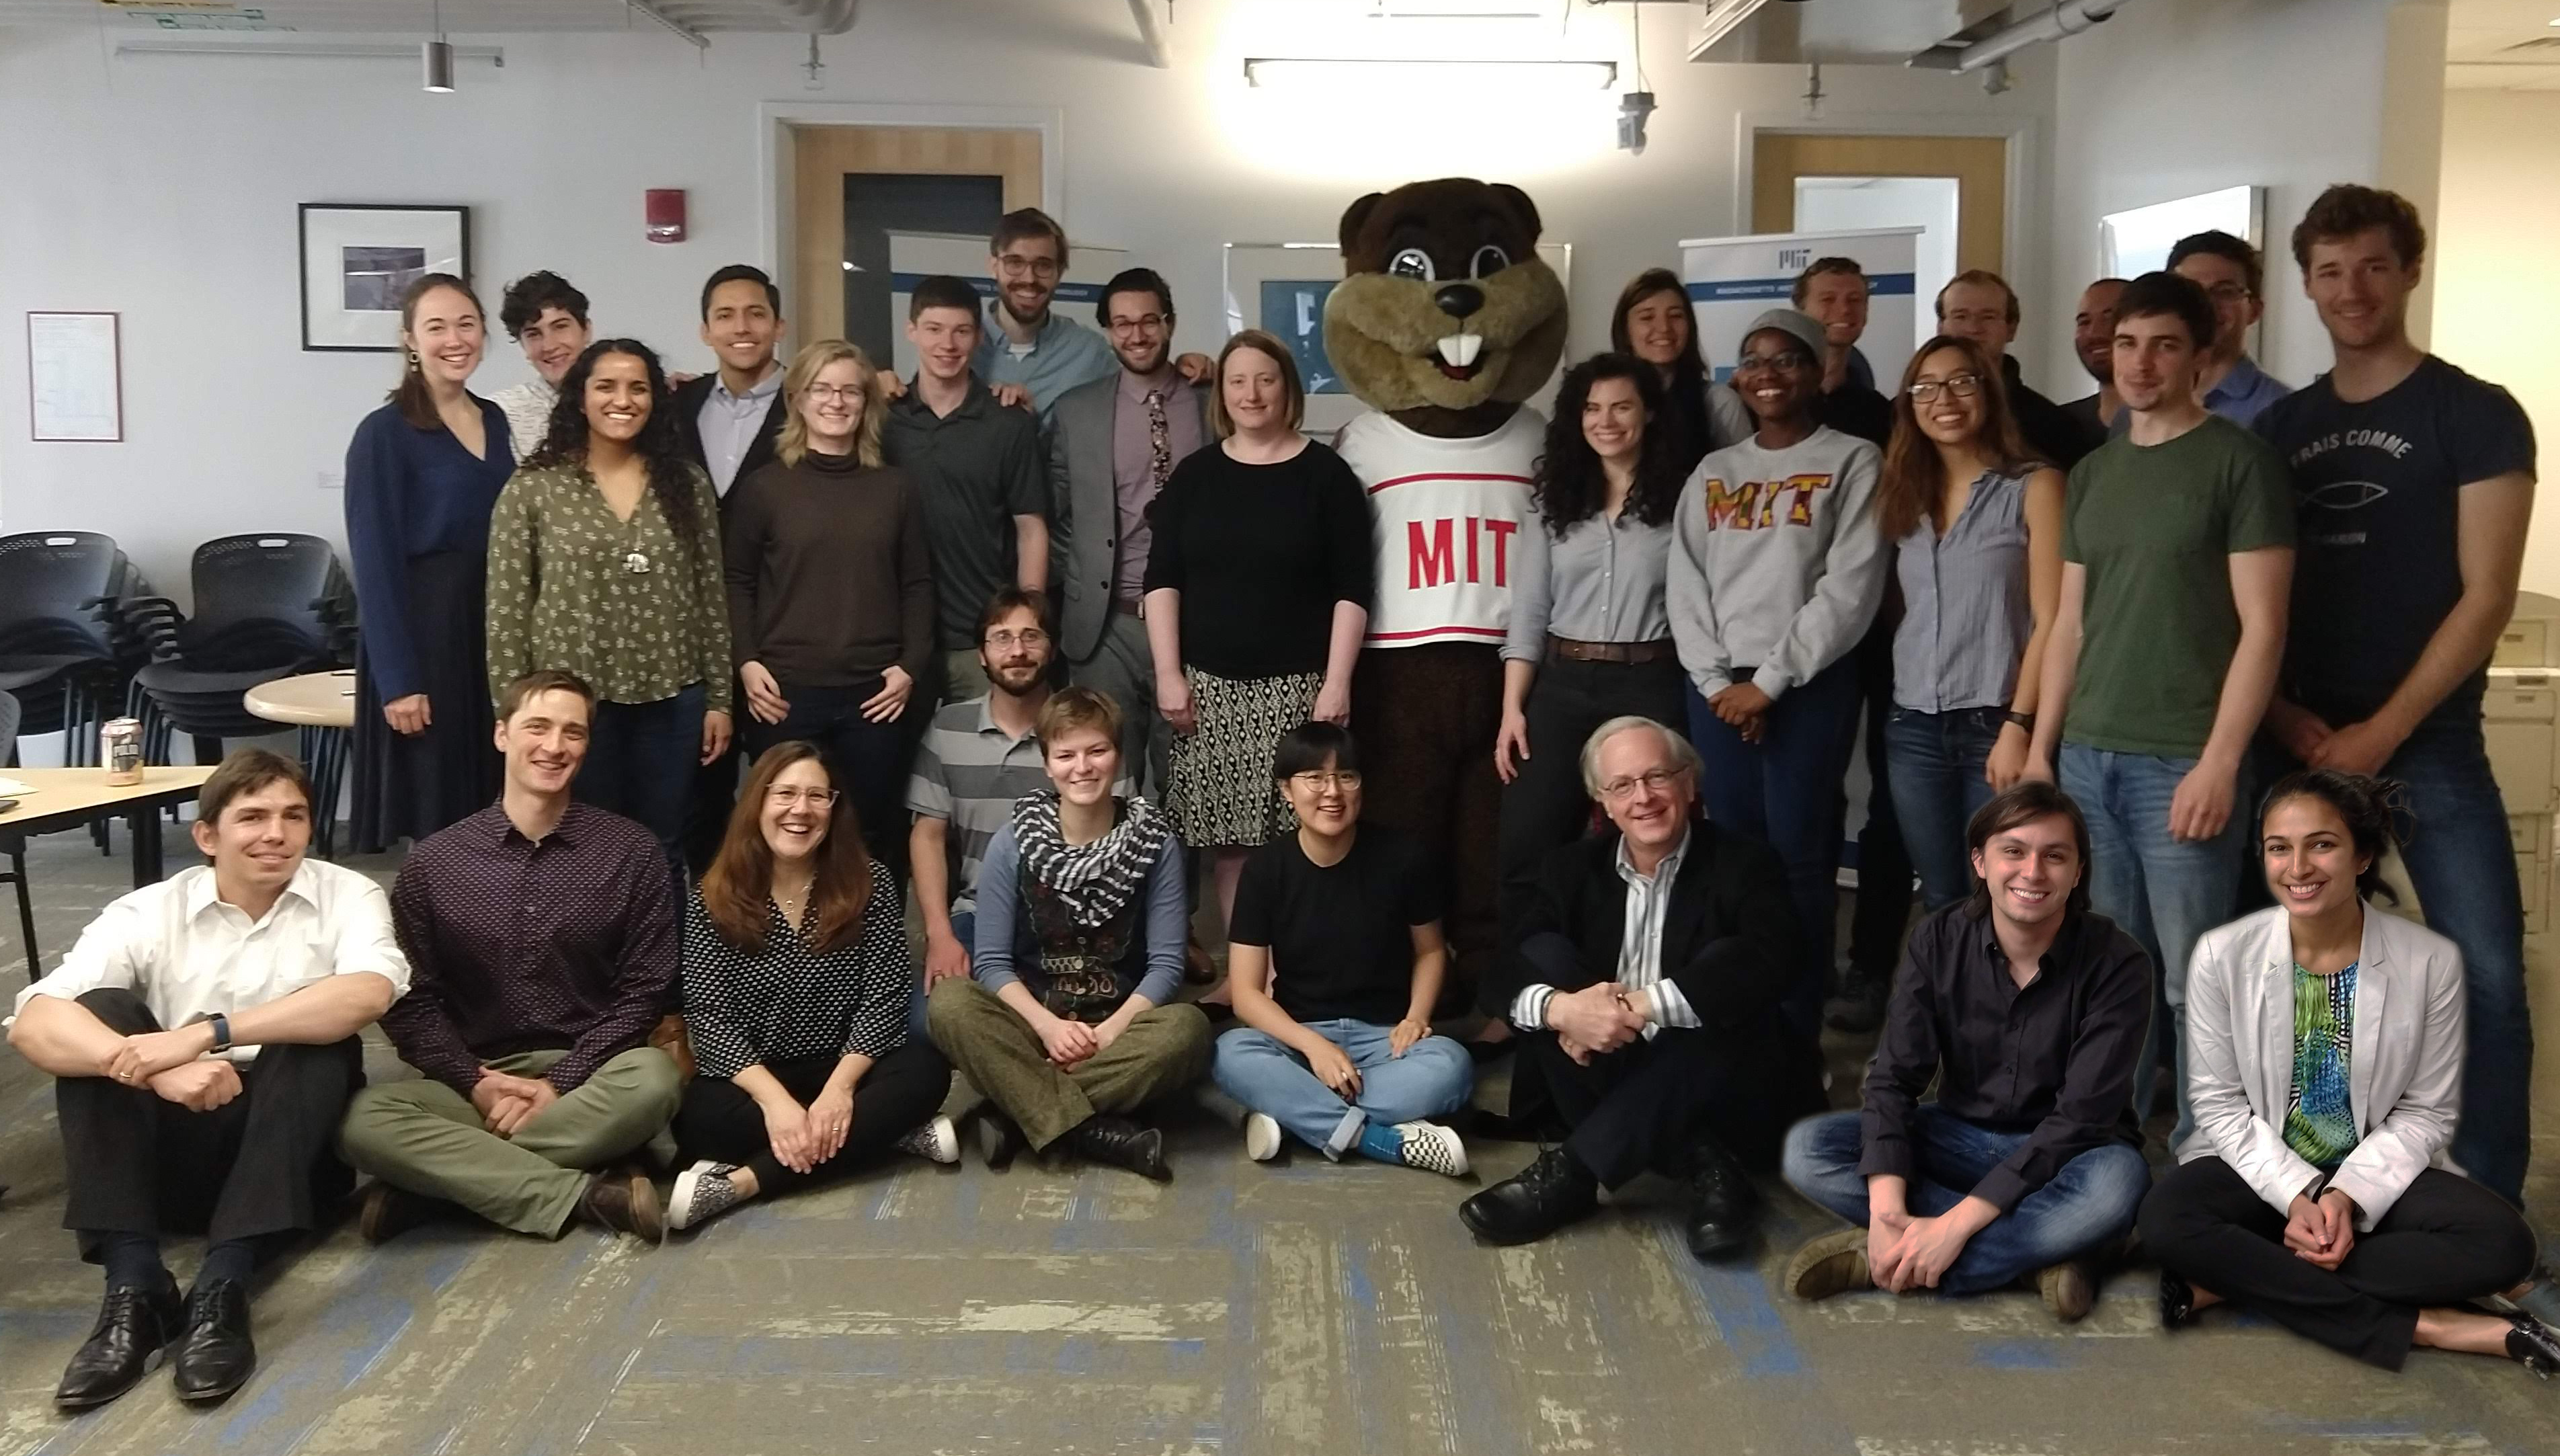 Tim the Beaver with TPP Director and IDSS/EAPS professor Noelle Selin, TPP staff, and the TPP class of 2019